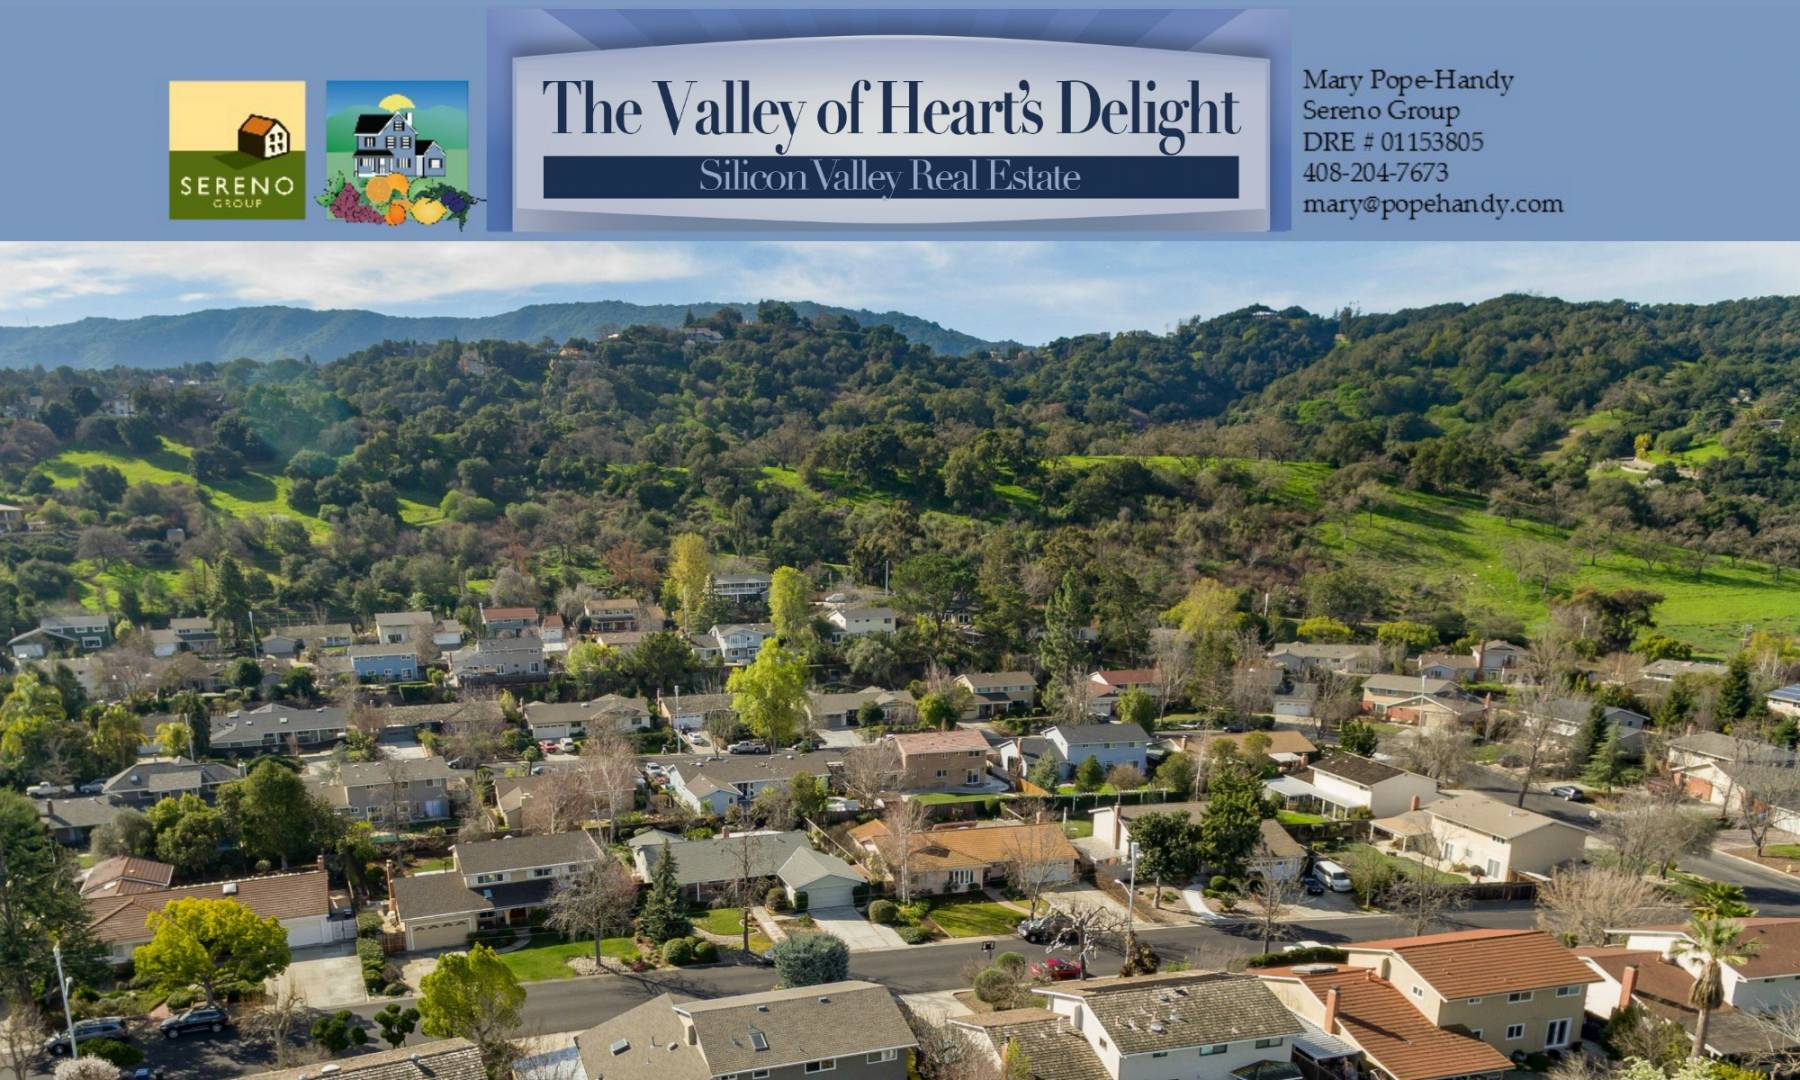 Valley of Heart's Delight - Silicon Valley Real Estate - Mary Pope-Handy